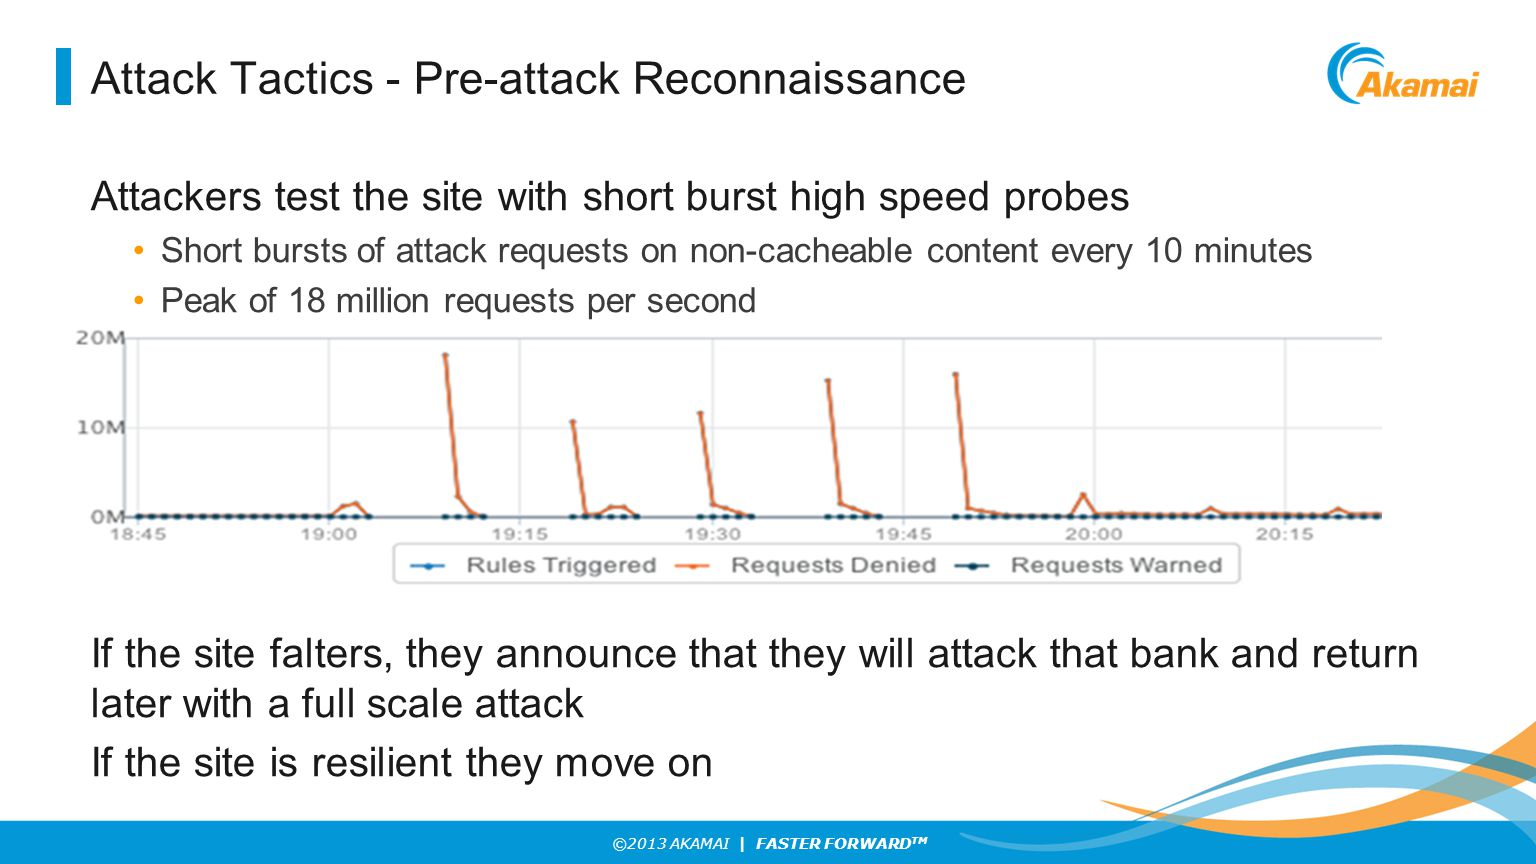 ©2013 AKAMAI | FASTER FORWARD TM Attack Tactics - Pre-attack Reconnaissance Attackers test the site with short burst high speed probes Short bursts of attack requests on non-cacheable content every 10 minutes Peak of 18 million requests per second If the site falters, they announce that they will attack that bank and return later with a full scale attack If the site is resilient they move on